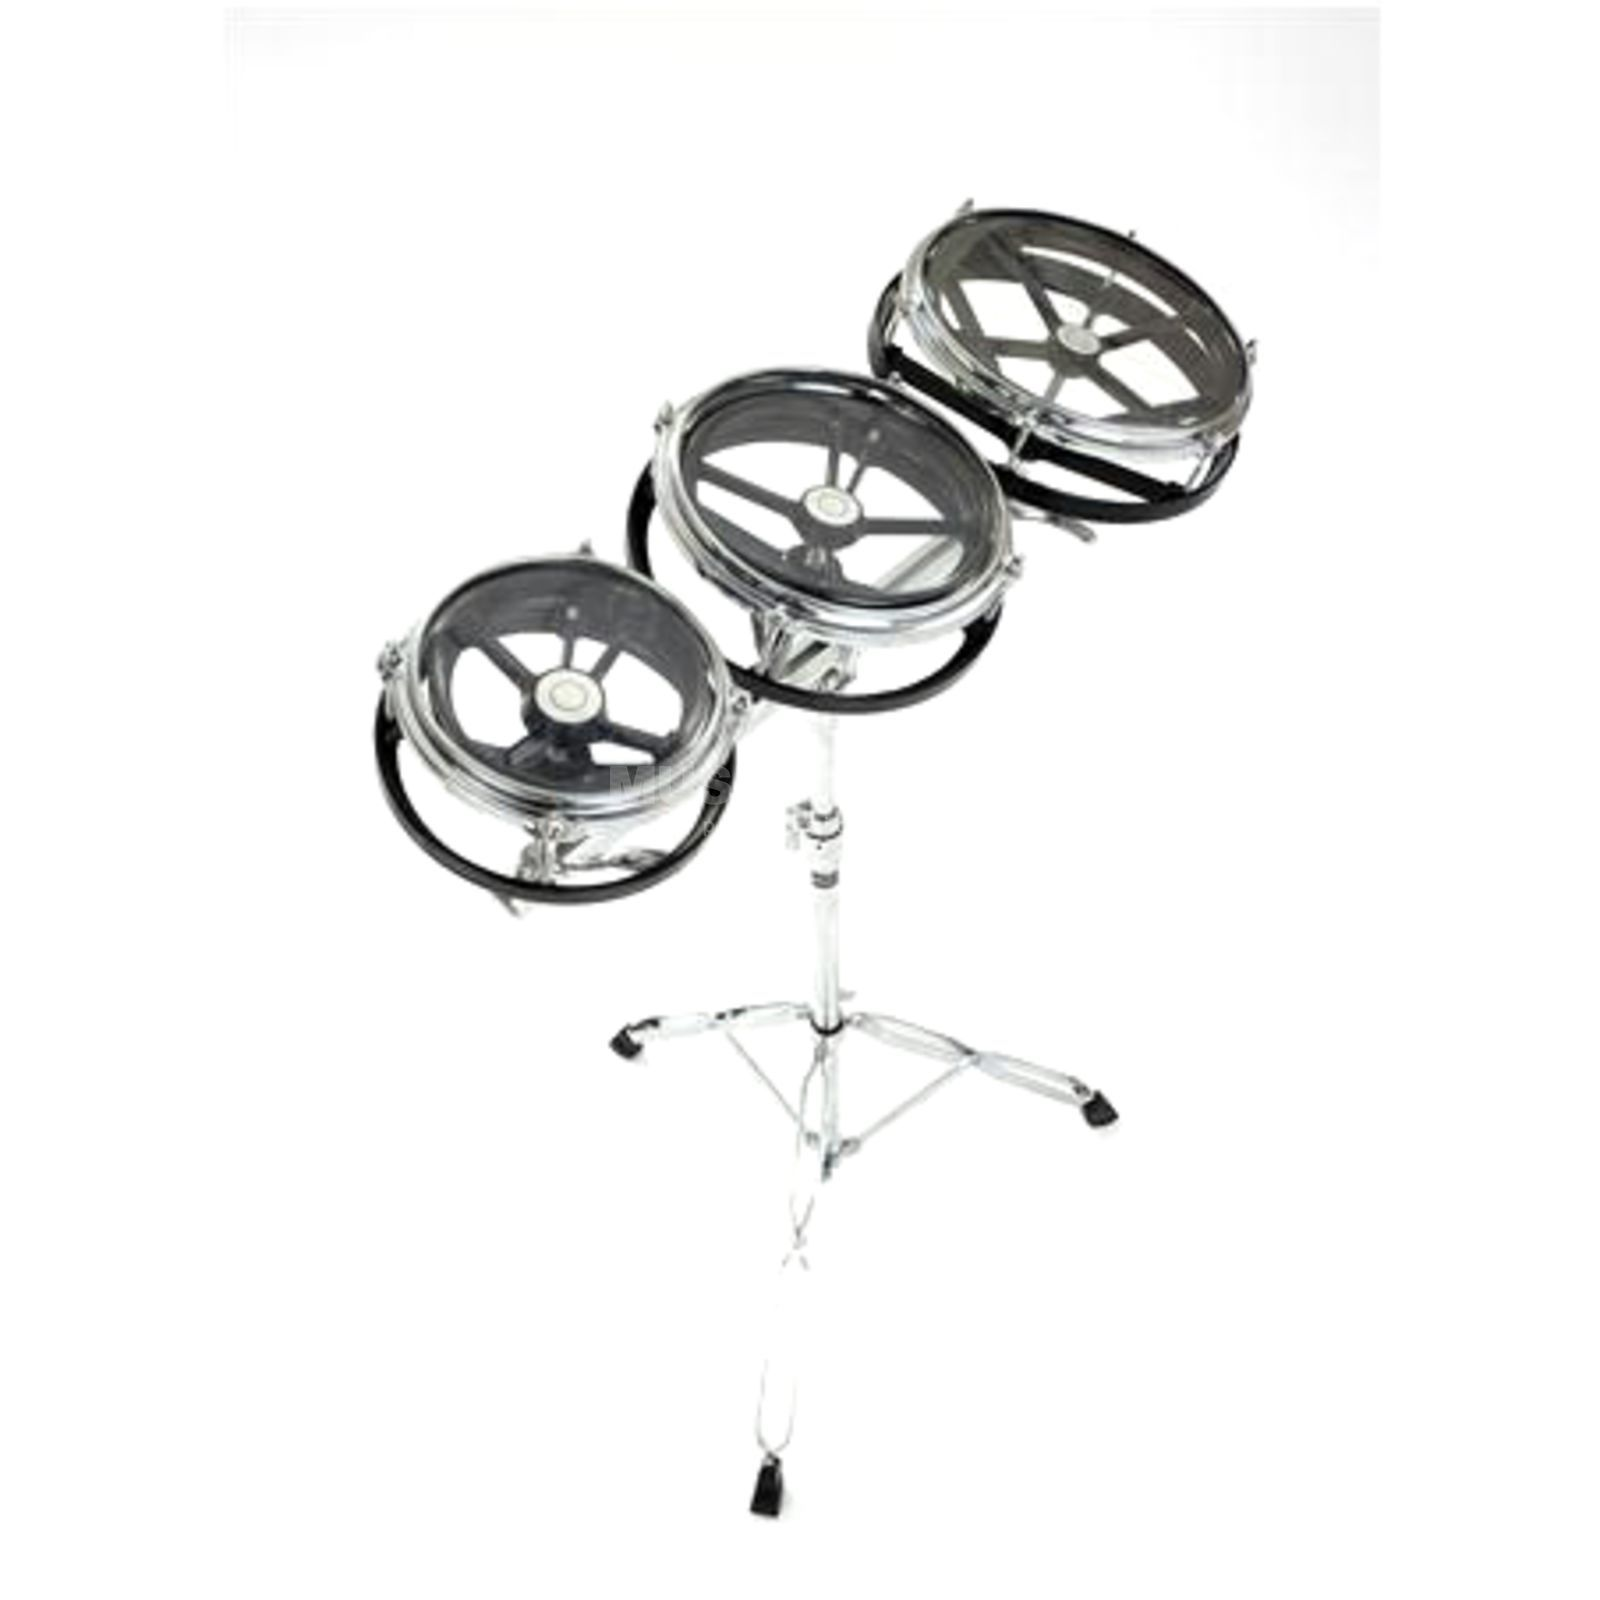 "Percussion Plus PP691 Rotodrums Set 6"", 8"", 10"", with Stand Produktbild"